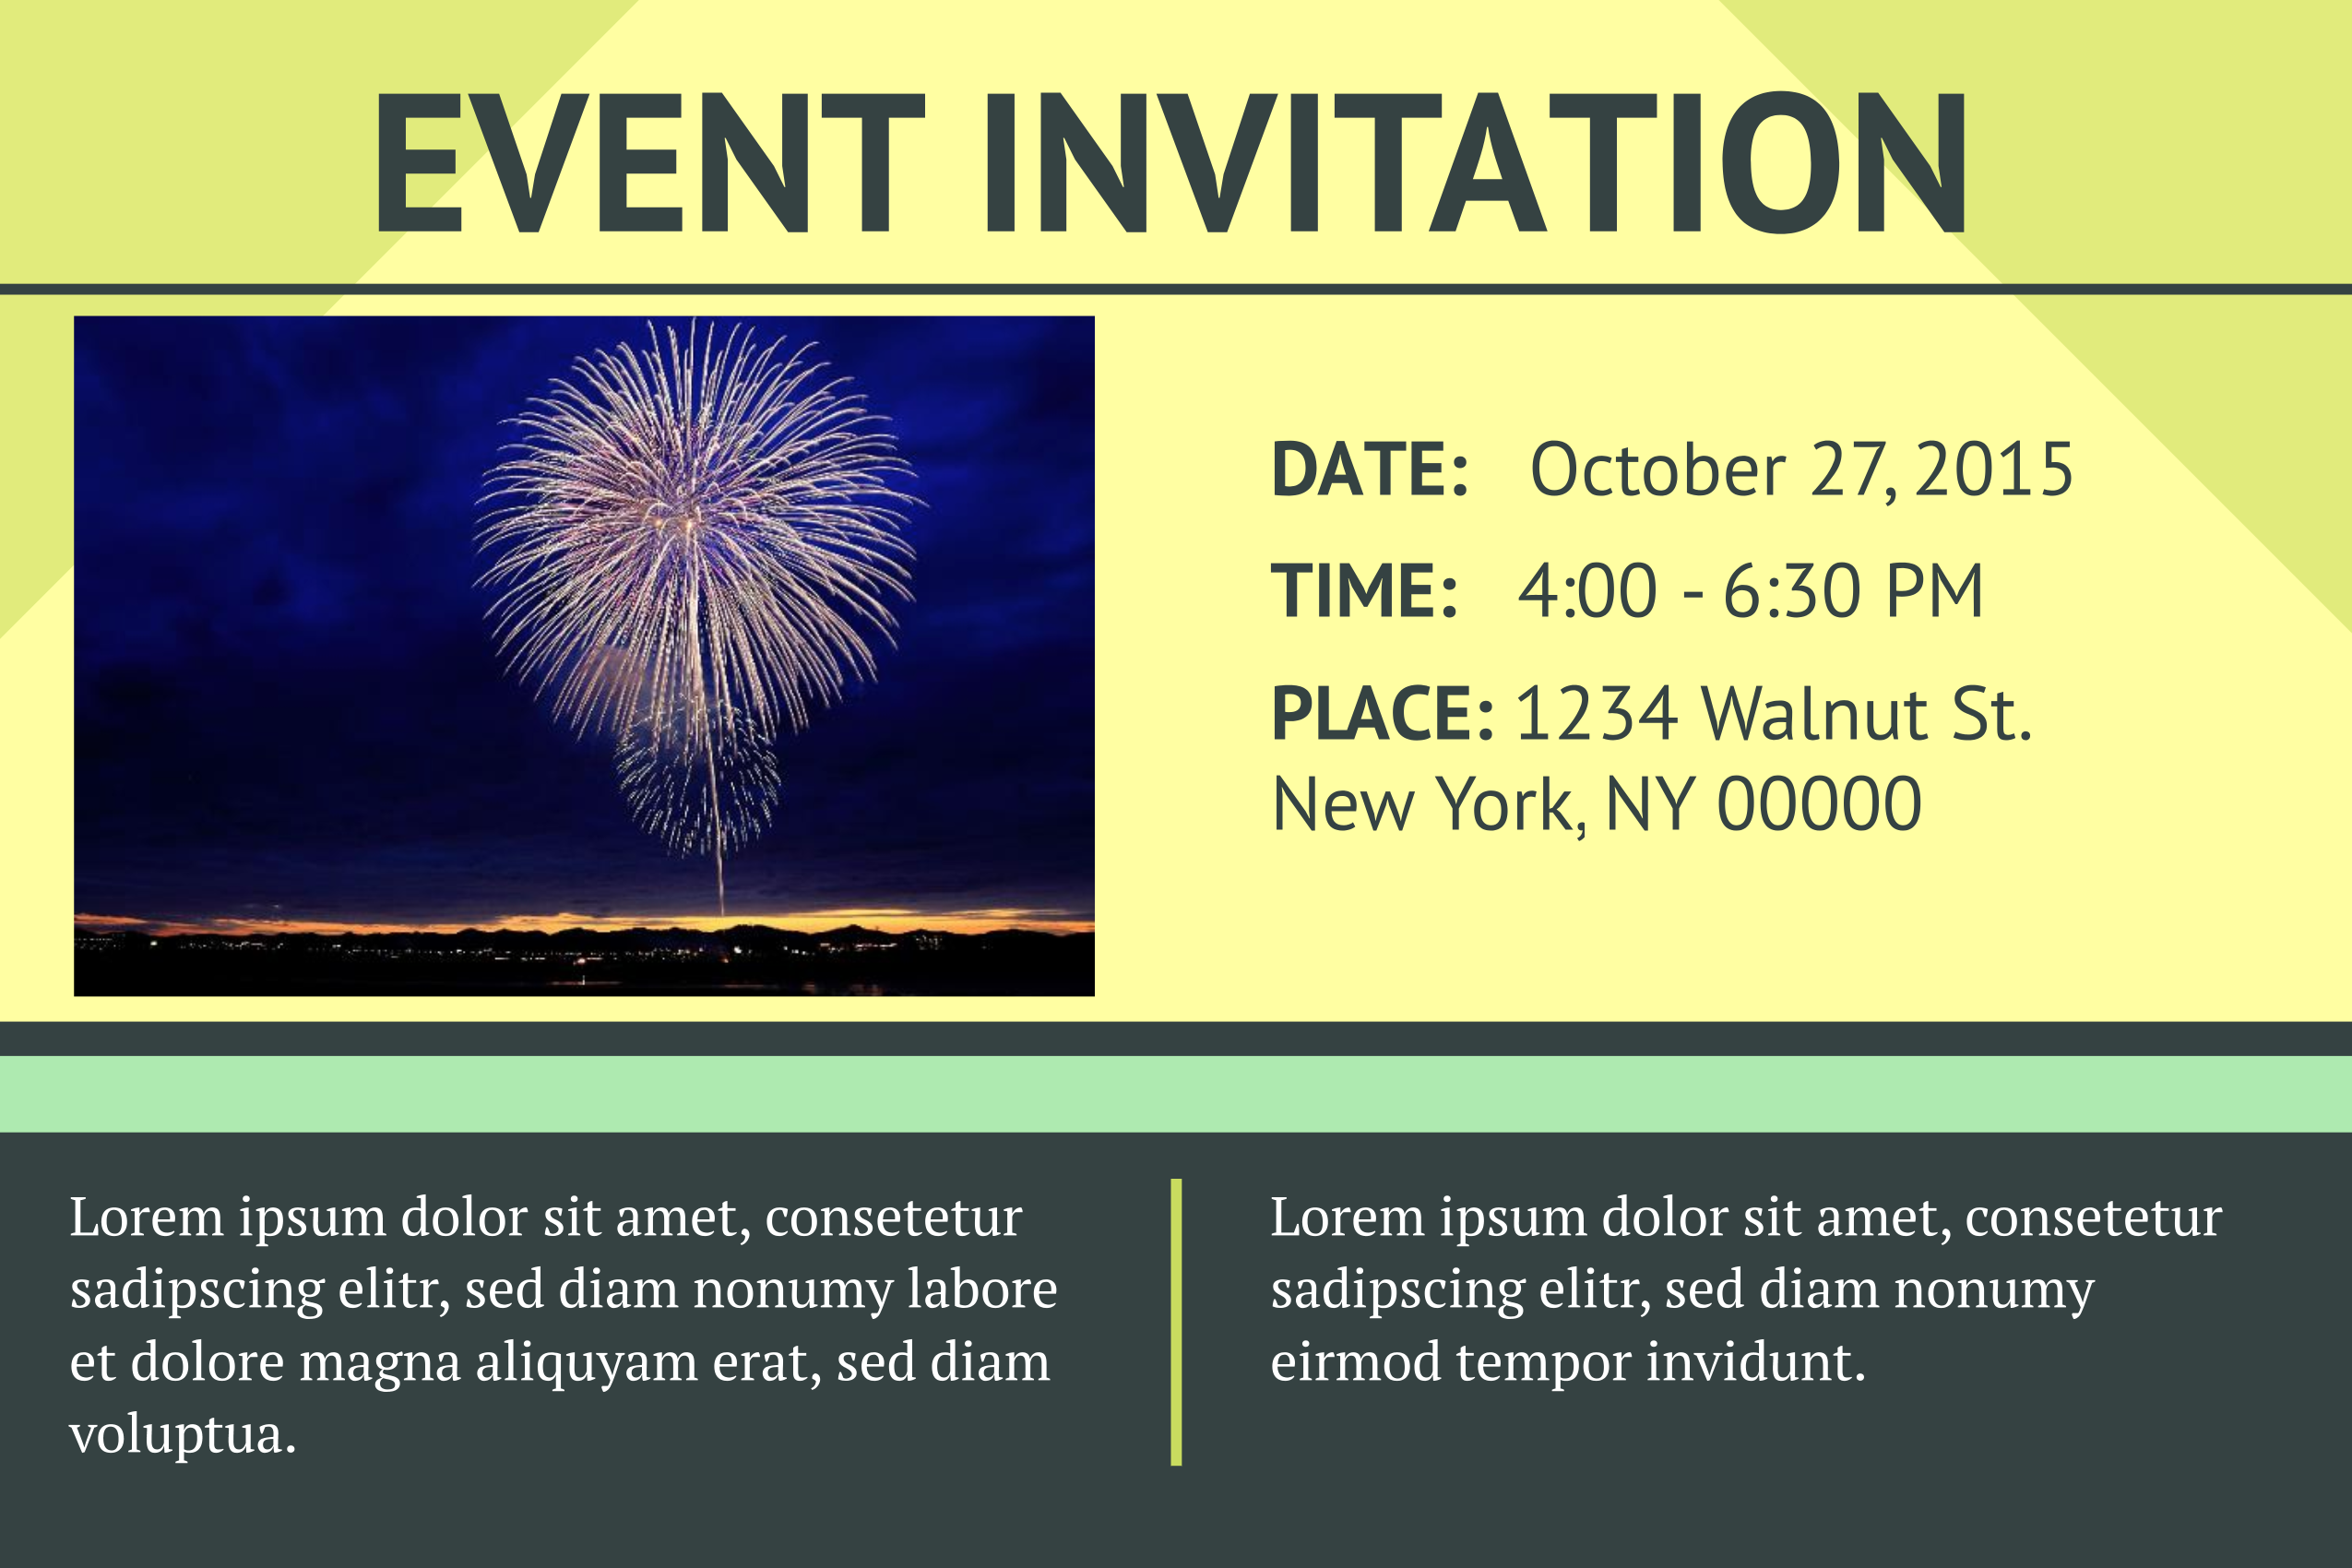 Symmetry Event Invitation Template